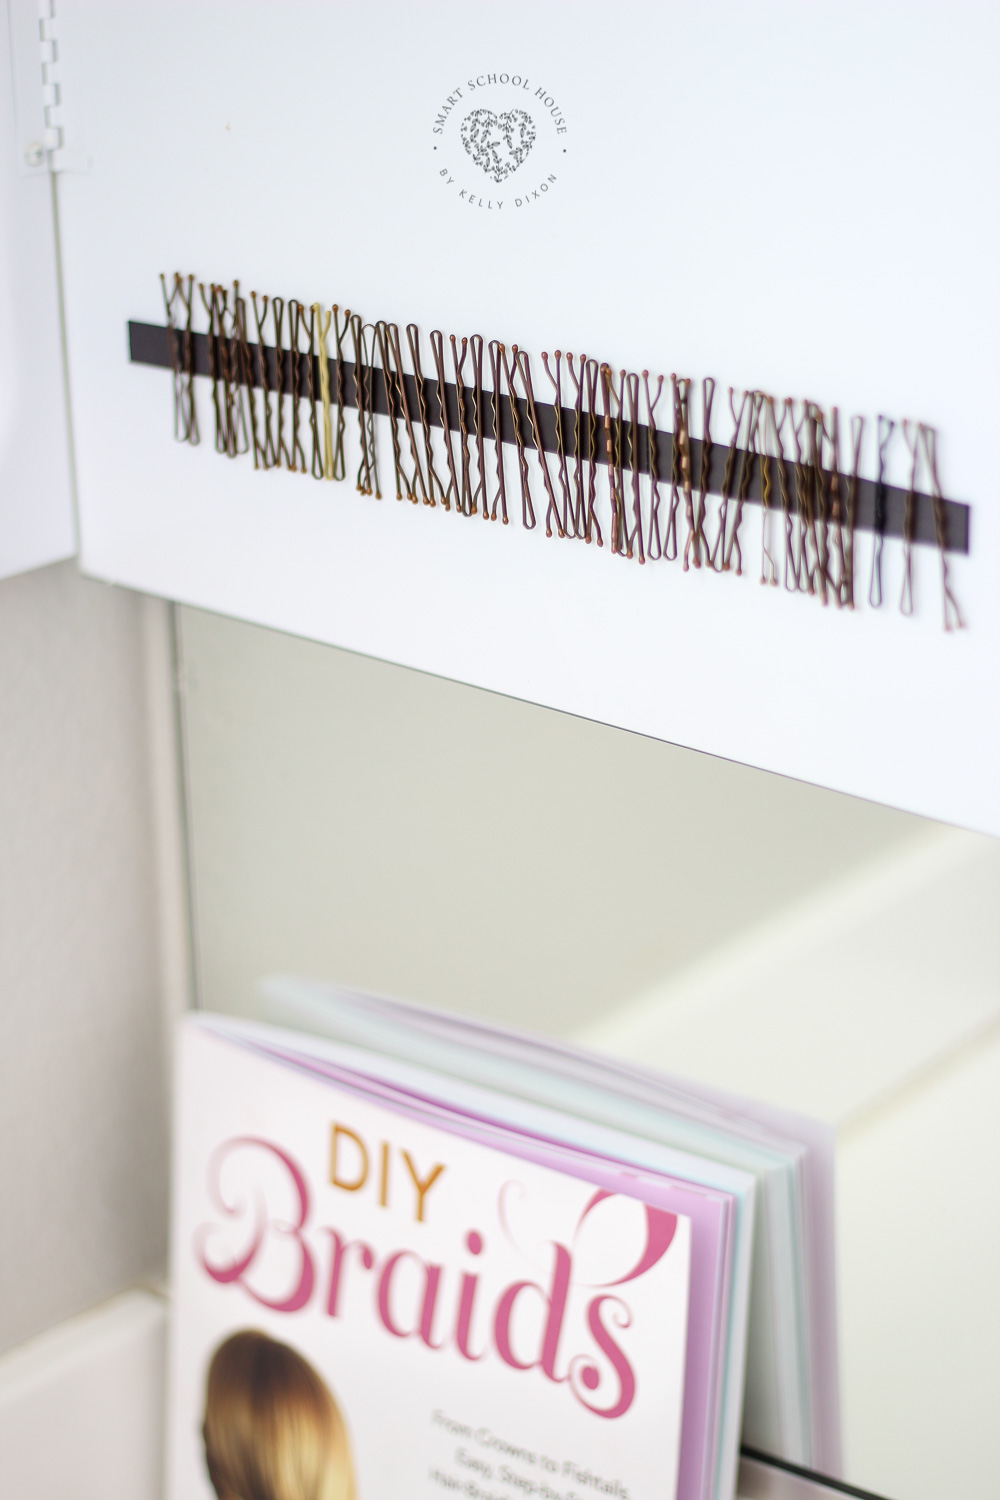 Bobby Pins on Magnets.I've owned about 6,000 bobby pins in my life. How many do I have left? Four. I have four left. Use magnetic strips to organize bobby pins